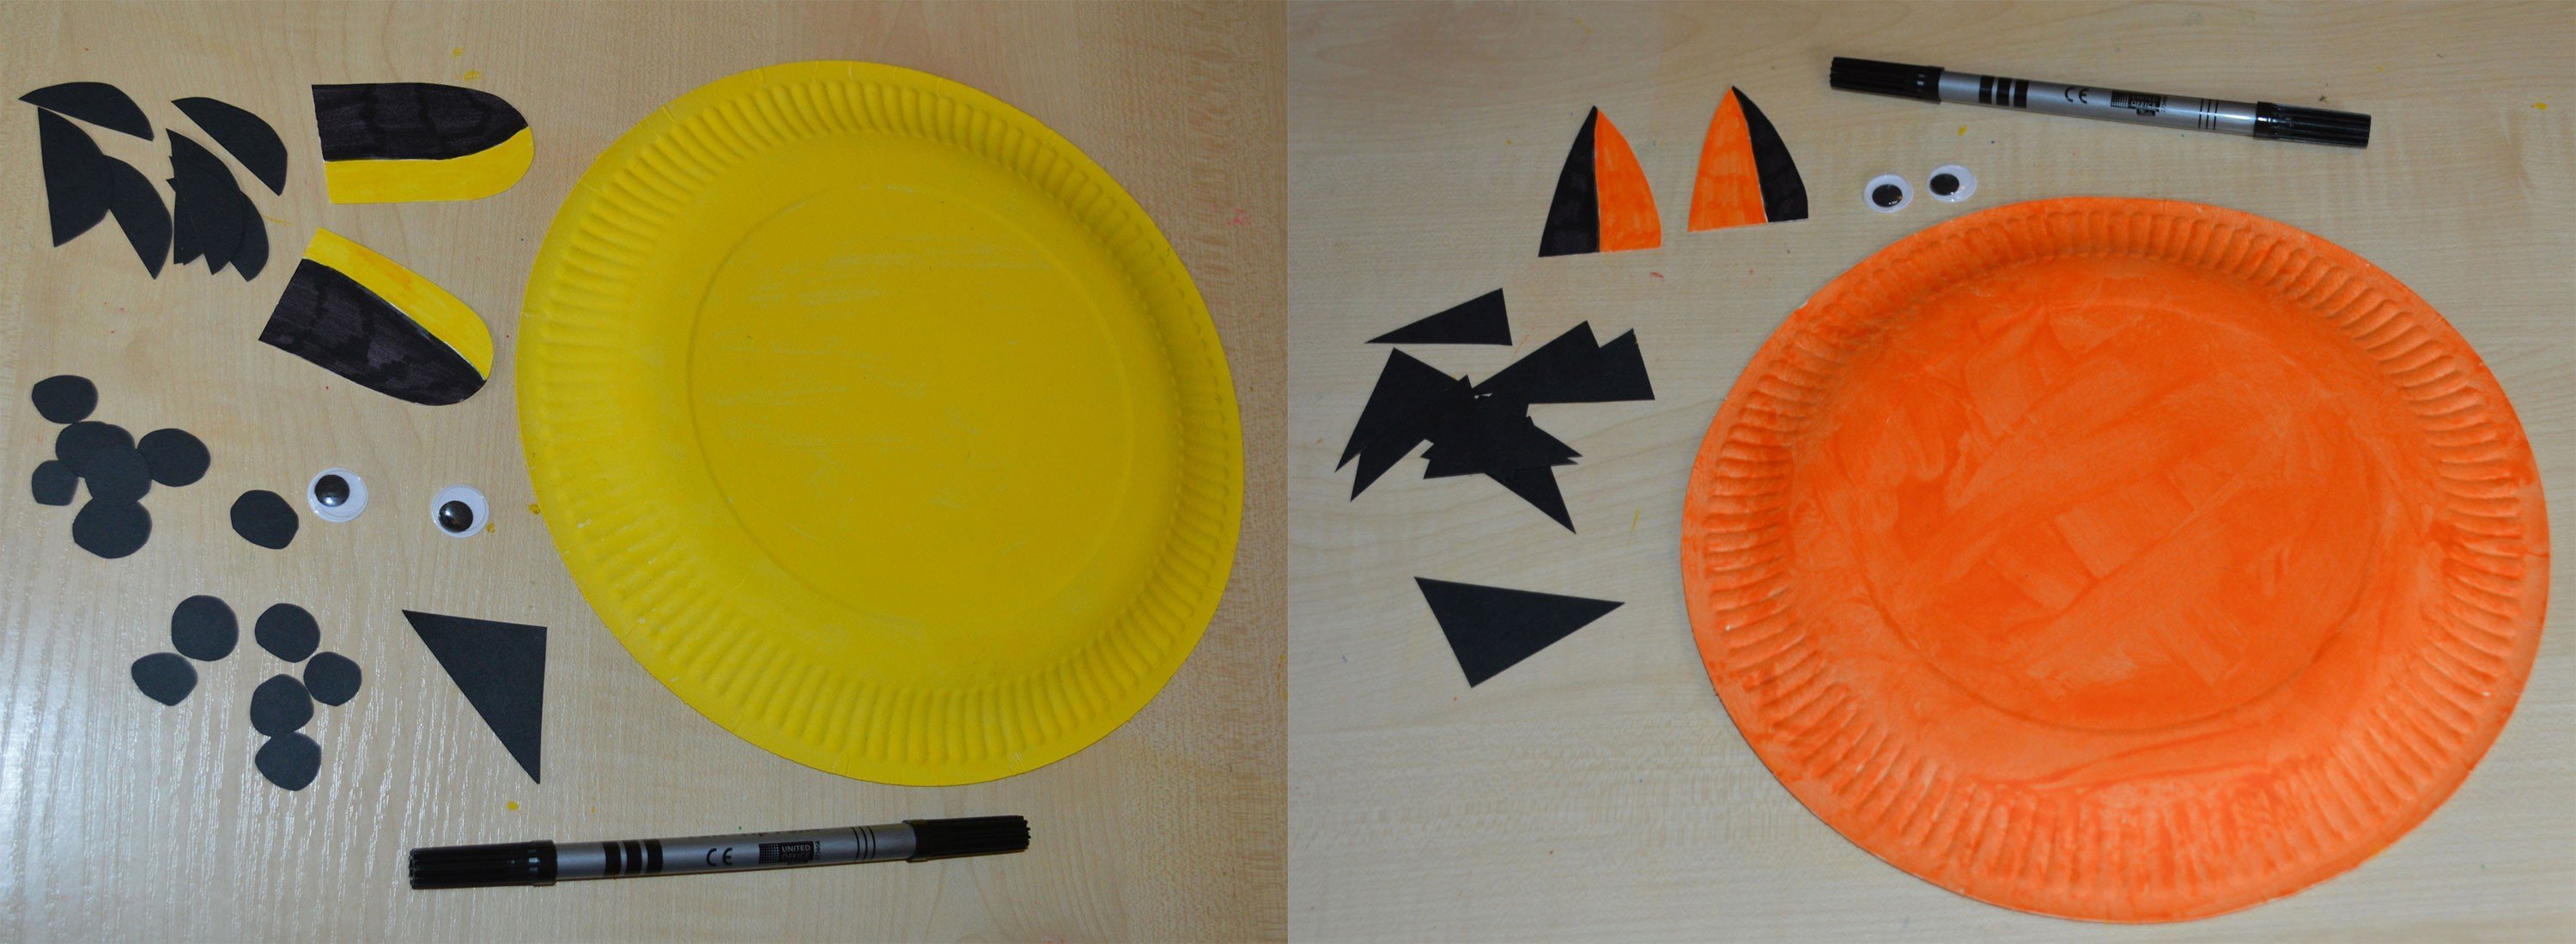 Paper Plate Animal S Cheetah And Tiger & Amusing Paper Plate Tiger Images - Best Image Engine - maxledpro.com